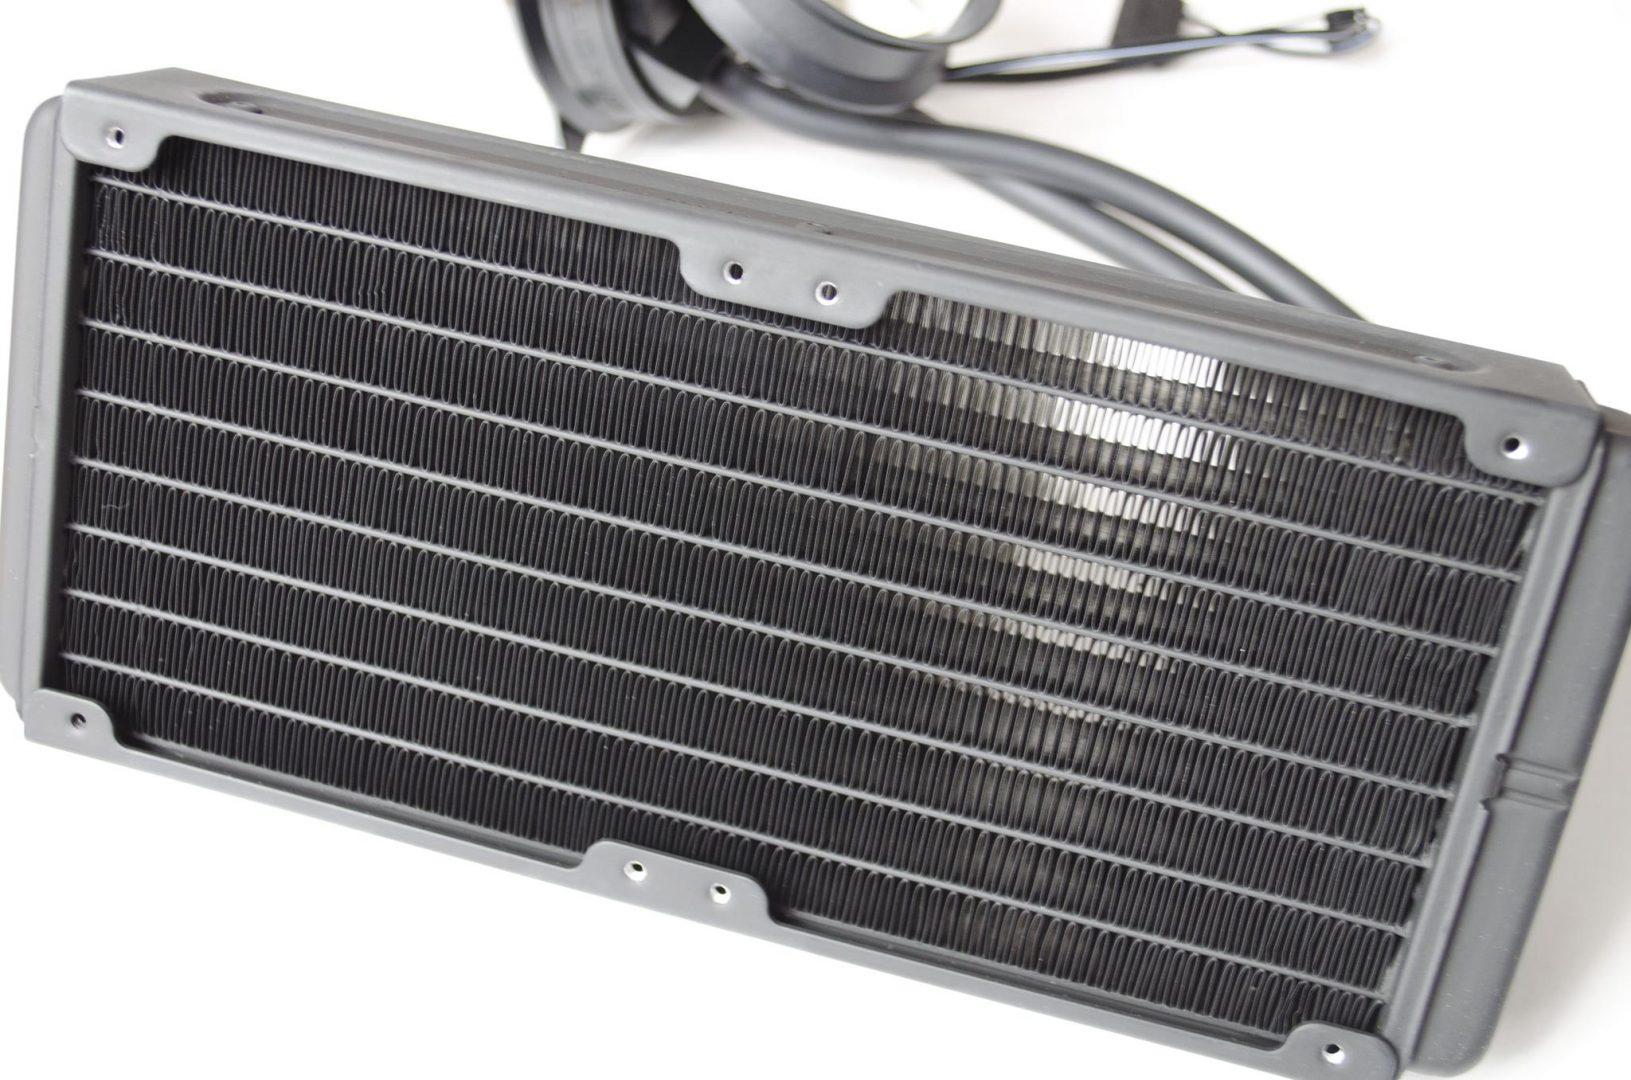 Cryorig a40 2400mm ultimate aio cpu cooler review_8